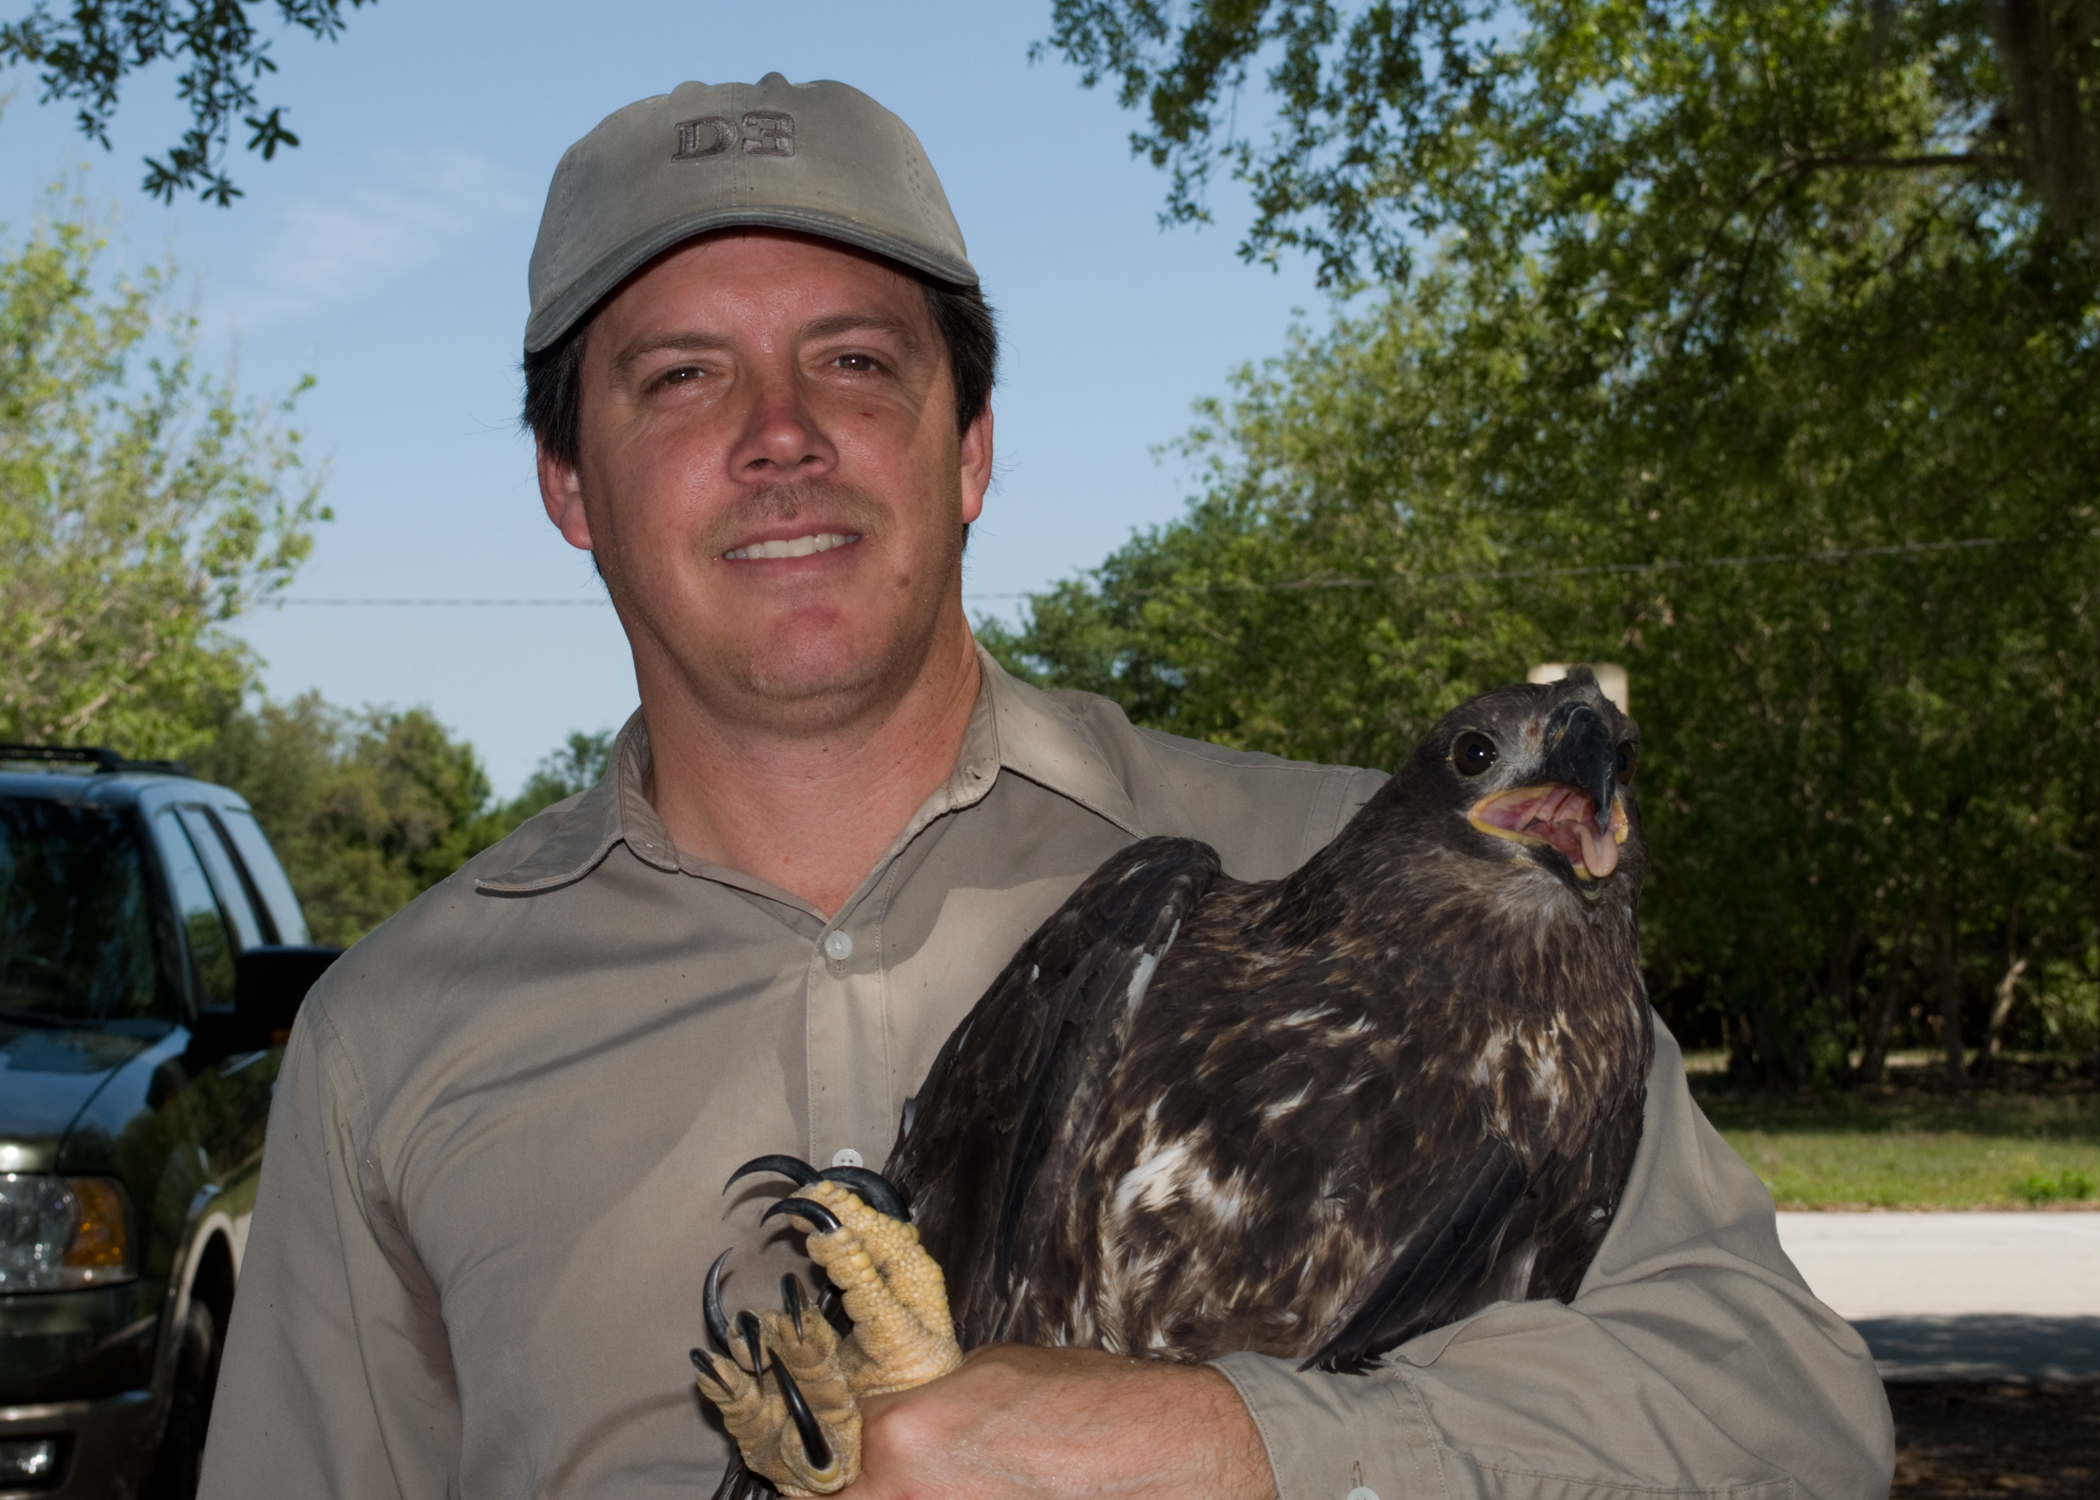 Lake Region Audubon Society President Reiner Munguia holds an eagle who was rescued from a nest at Willowbrook Golf Course in Winter Haven with the help of an EagleWatch volunteer. The bird was diagnosed with Avian Pox, a viral infection. After two months of treatment, the eagle was released in early June, becoming the 450th eagle returned the wild from the Audubon Center for Birds of Prey.